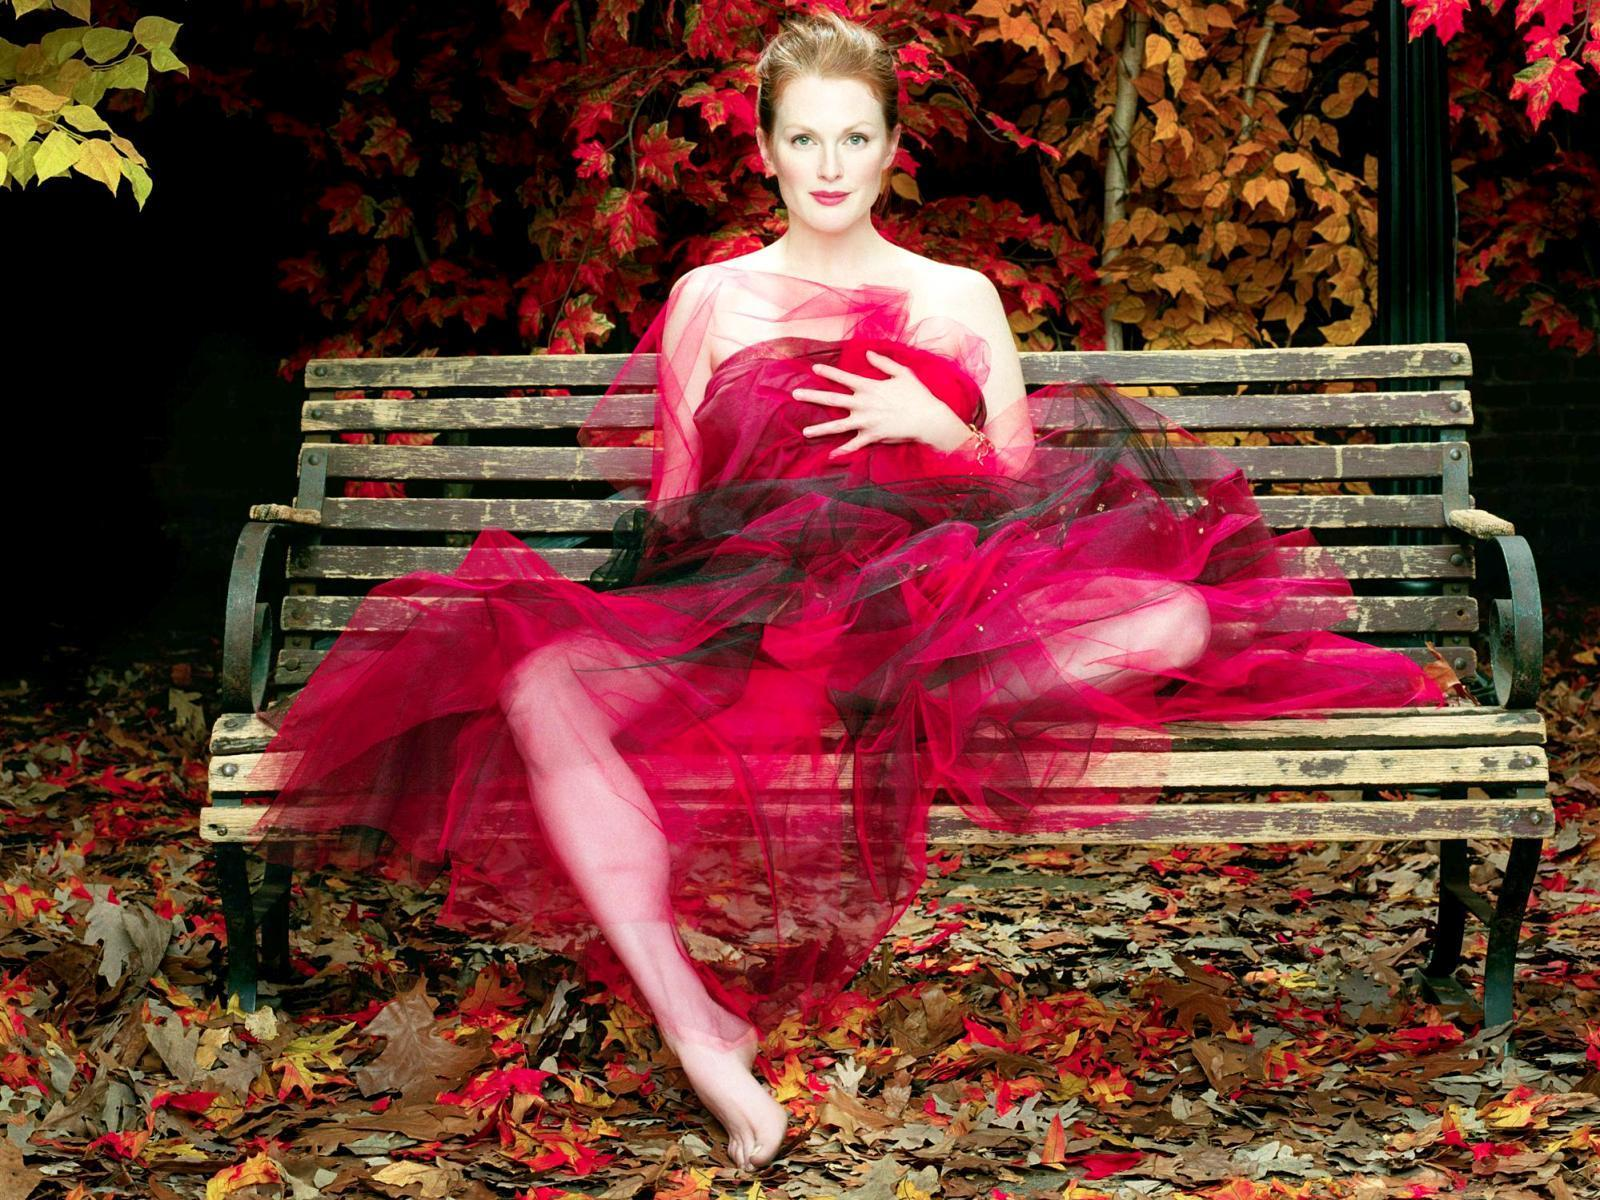 Julianne Moore Widescreen for desktop